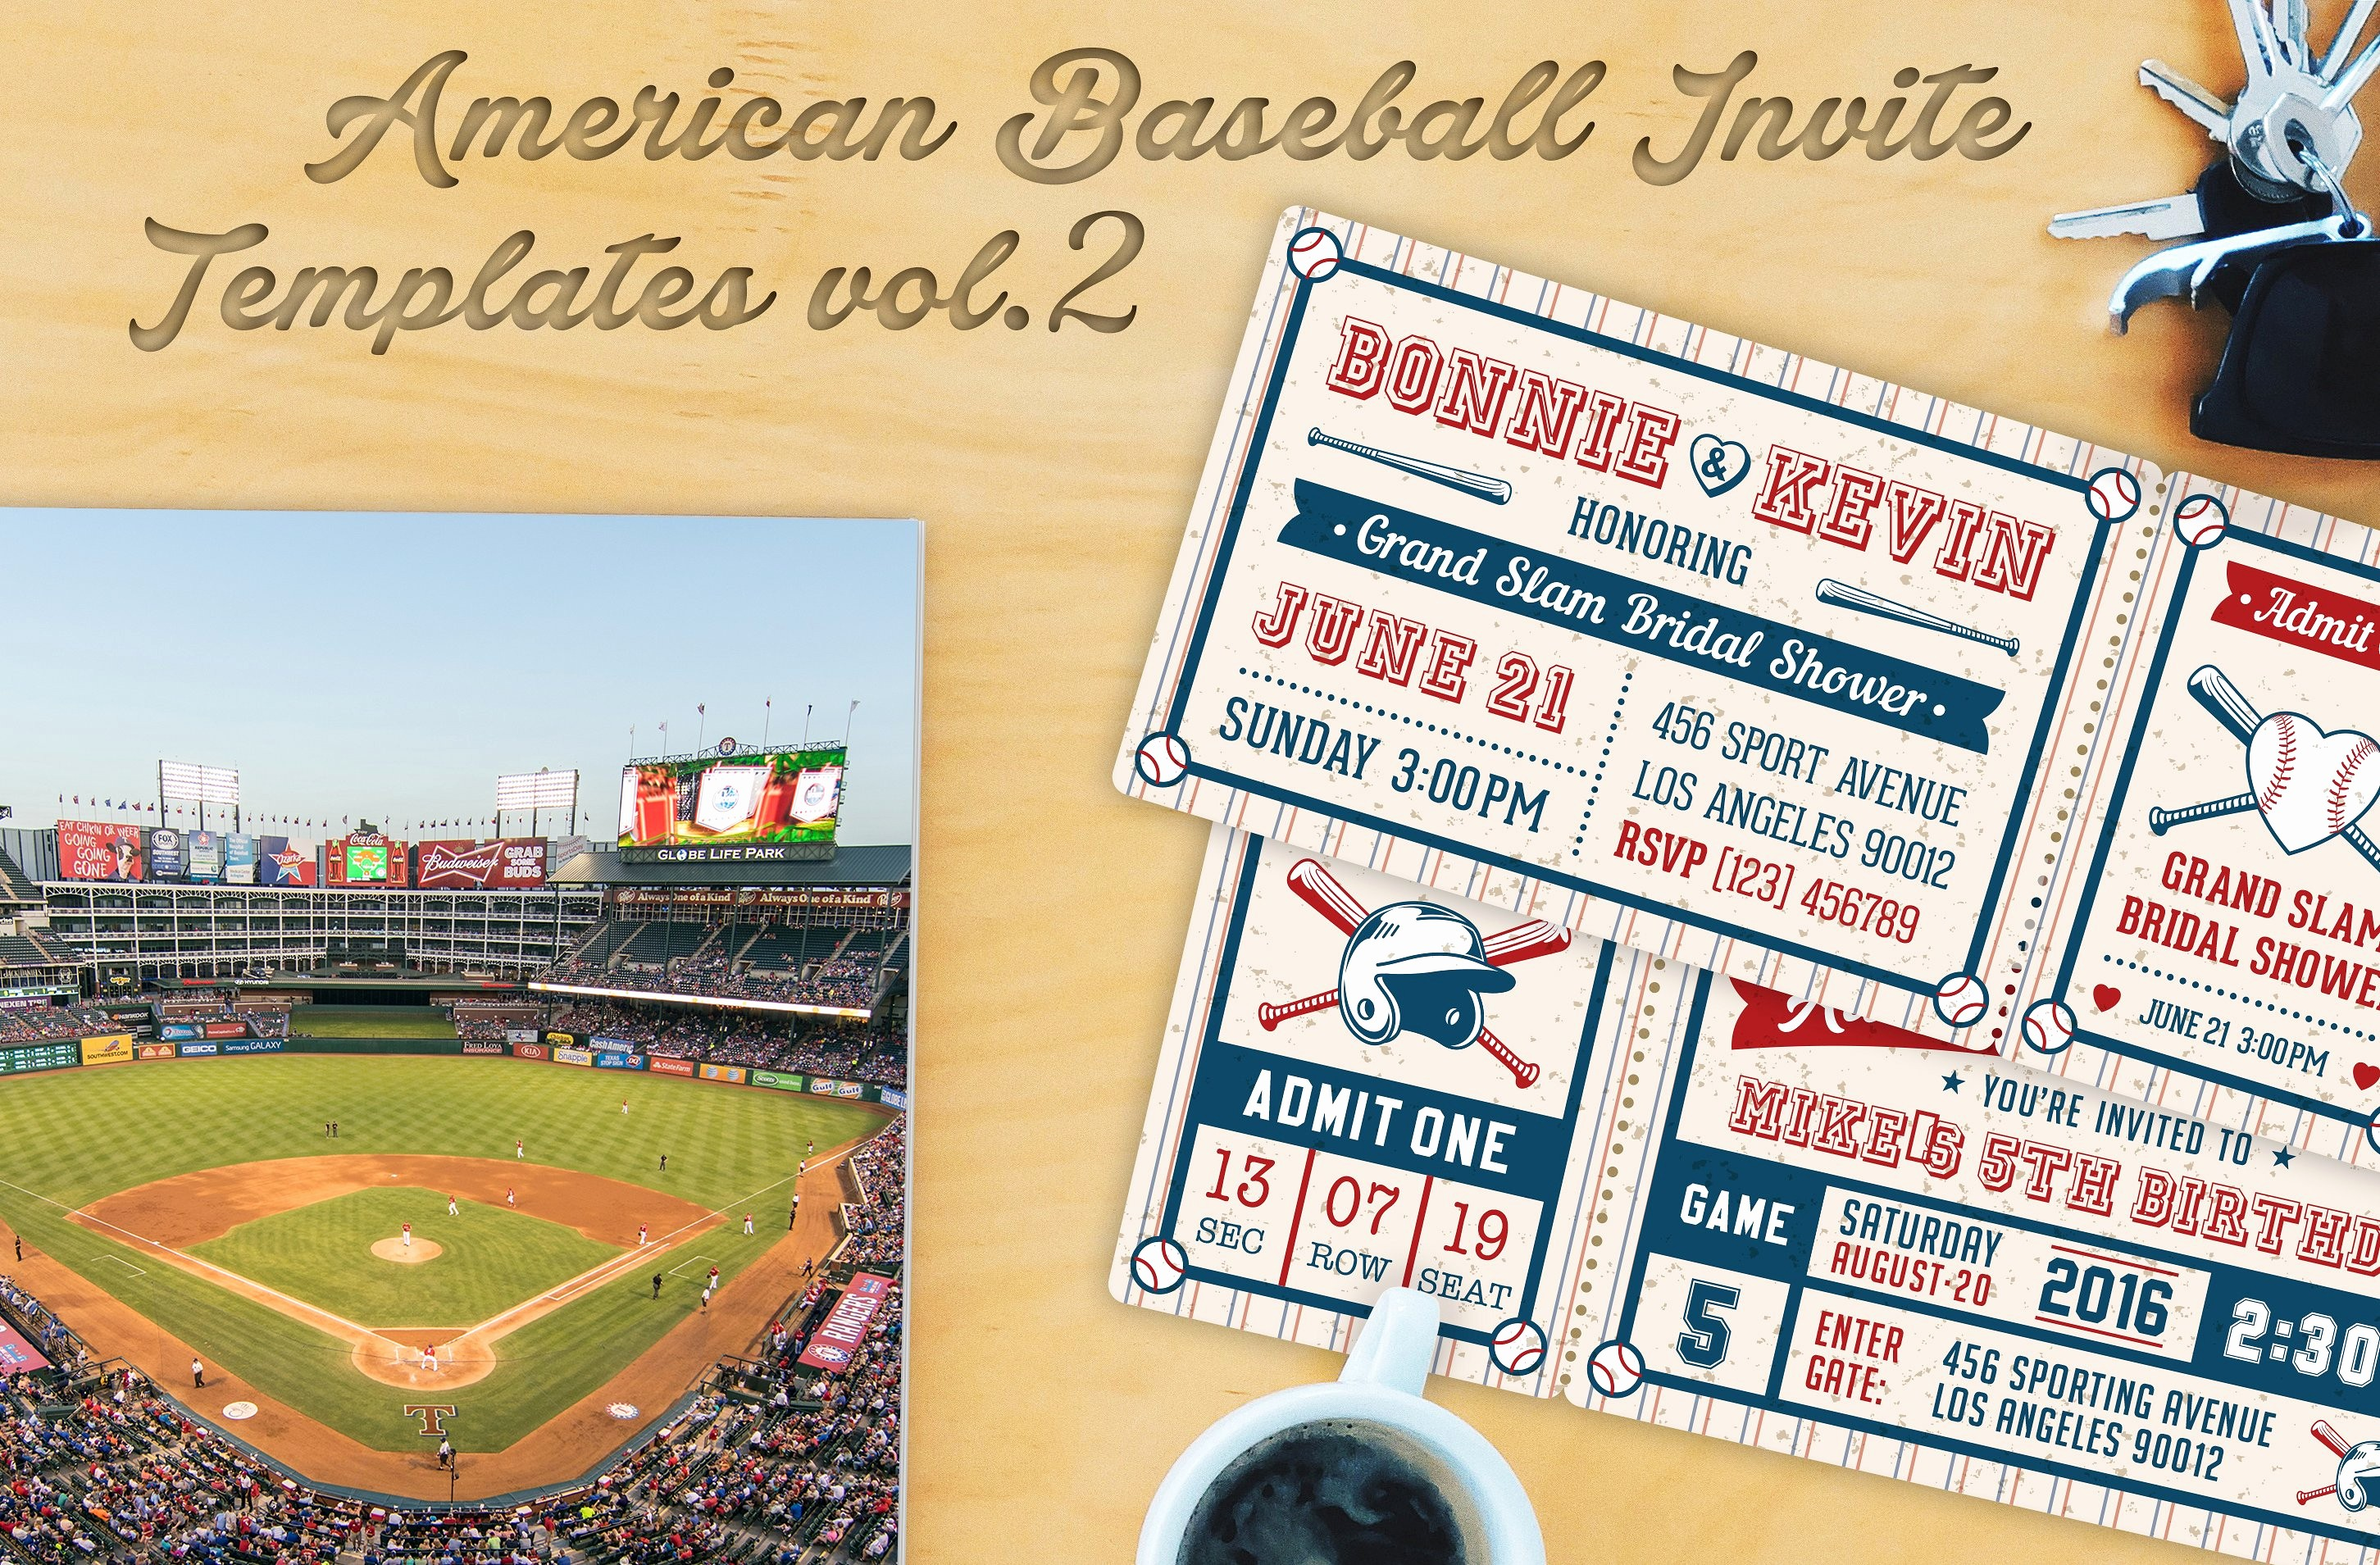 Baseball Ticket Invitation Template Free Beautiful Baseball Ticket Party Invites 1 Invitation Templates